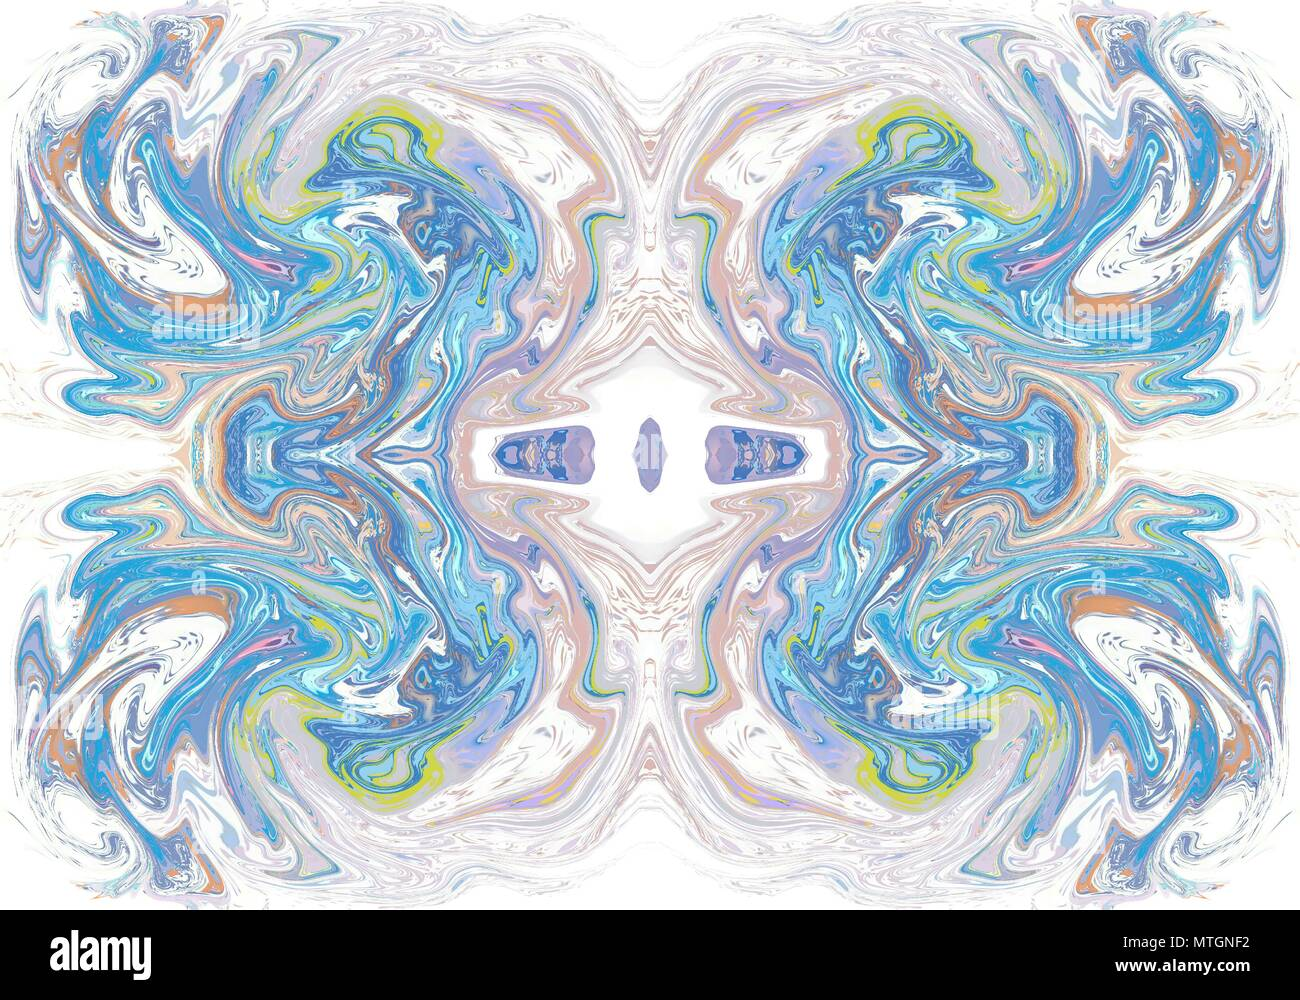 Graphic Painting Fractal Art Abstract Design Background